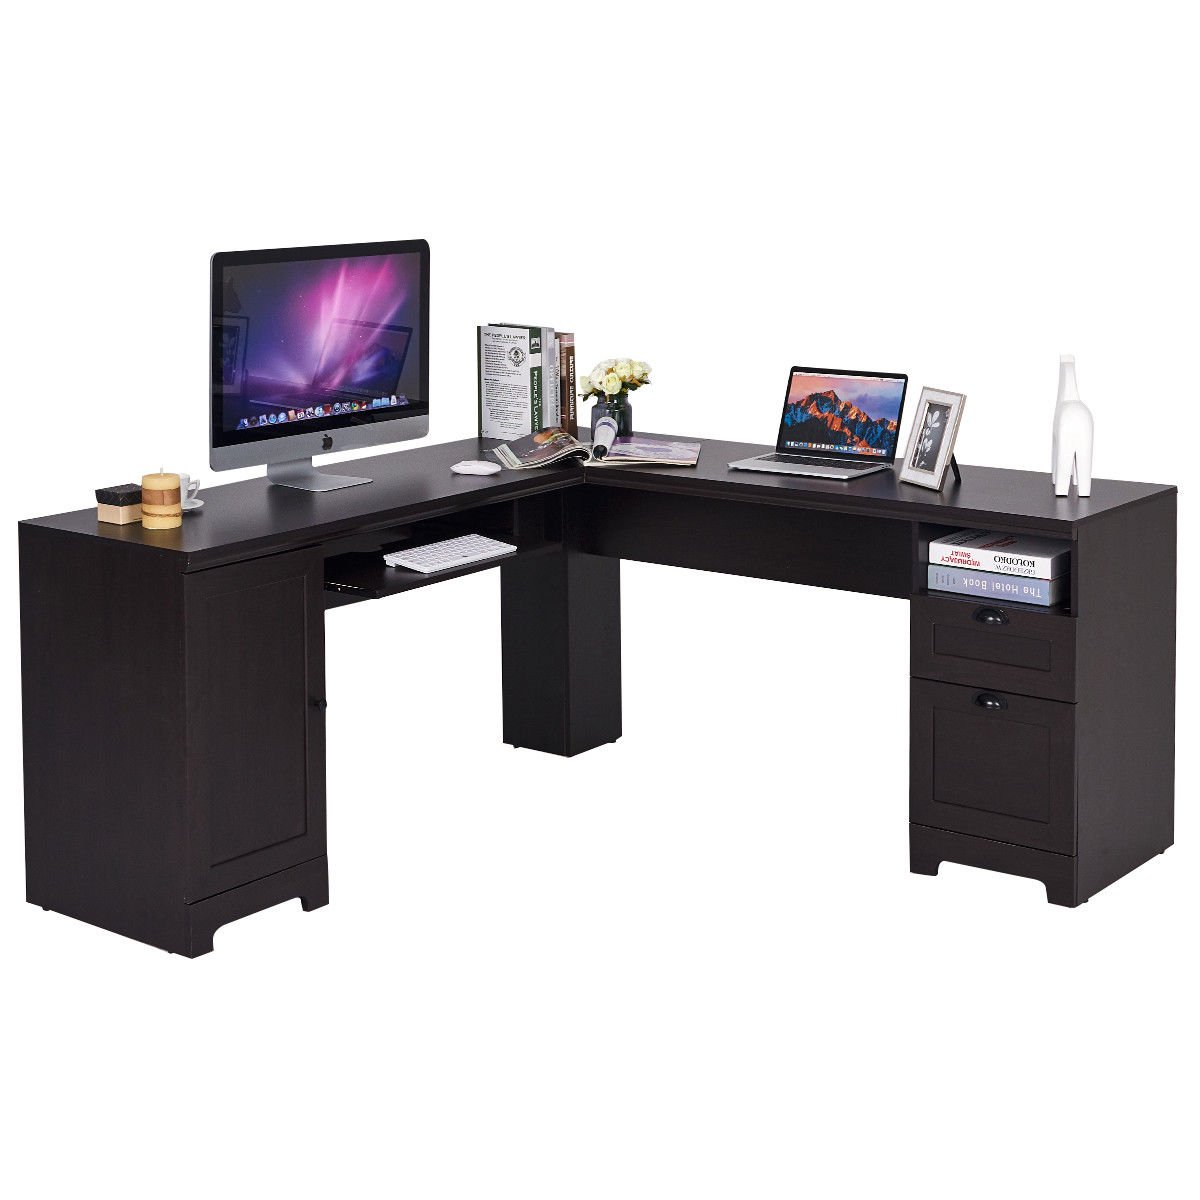 L Shaped Corner Computer Desk Writing Table Study Workstation W Drawers Storage